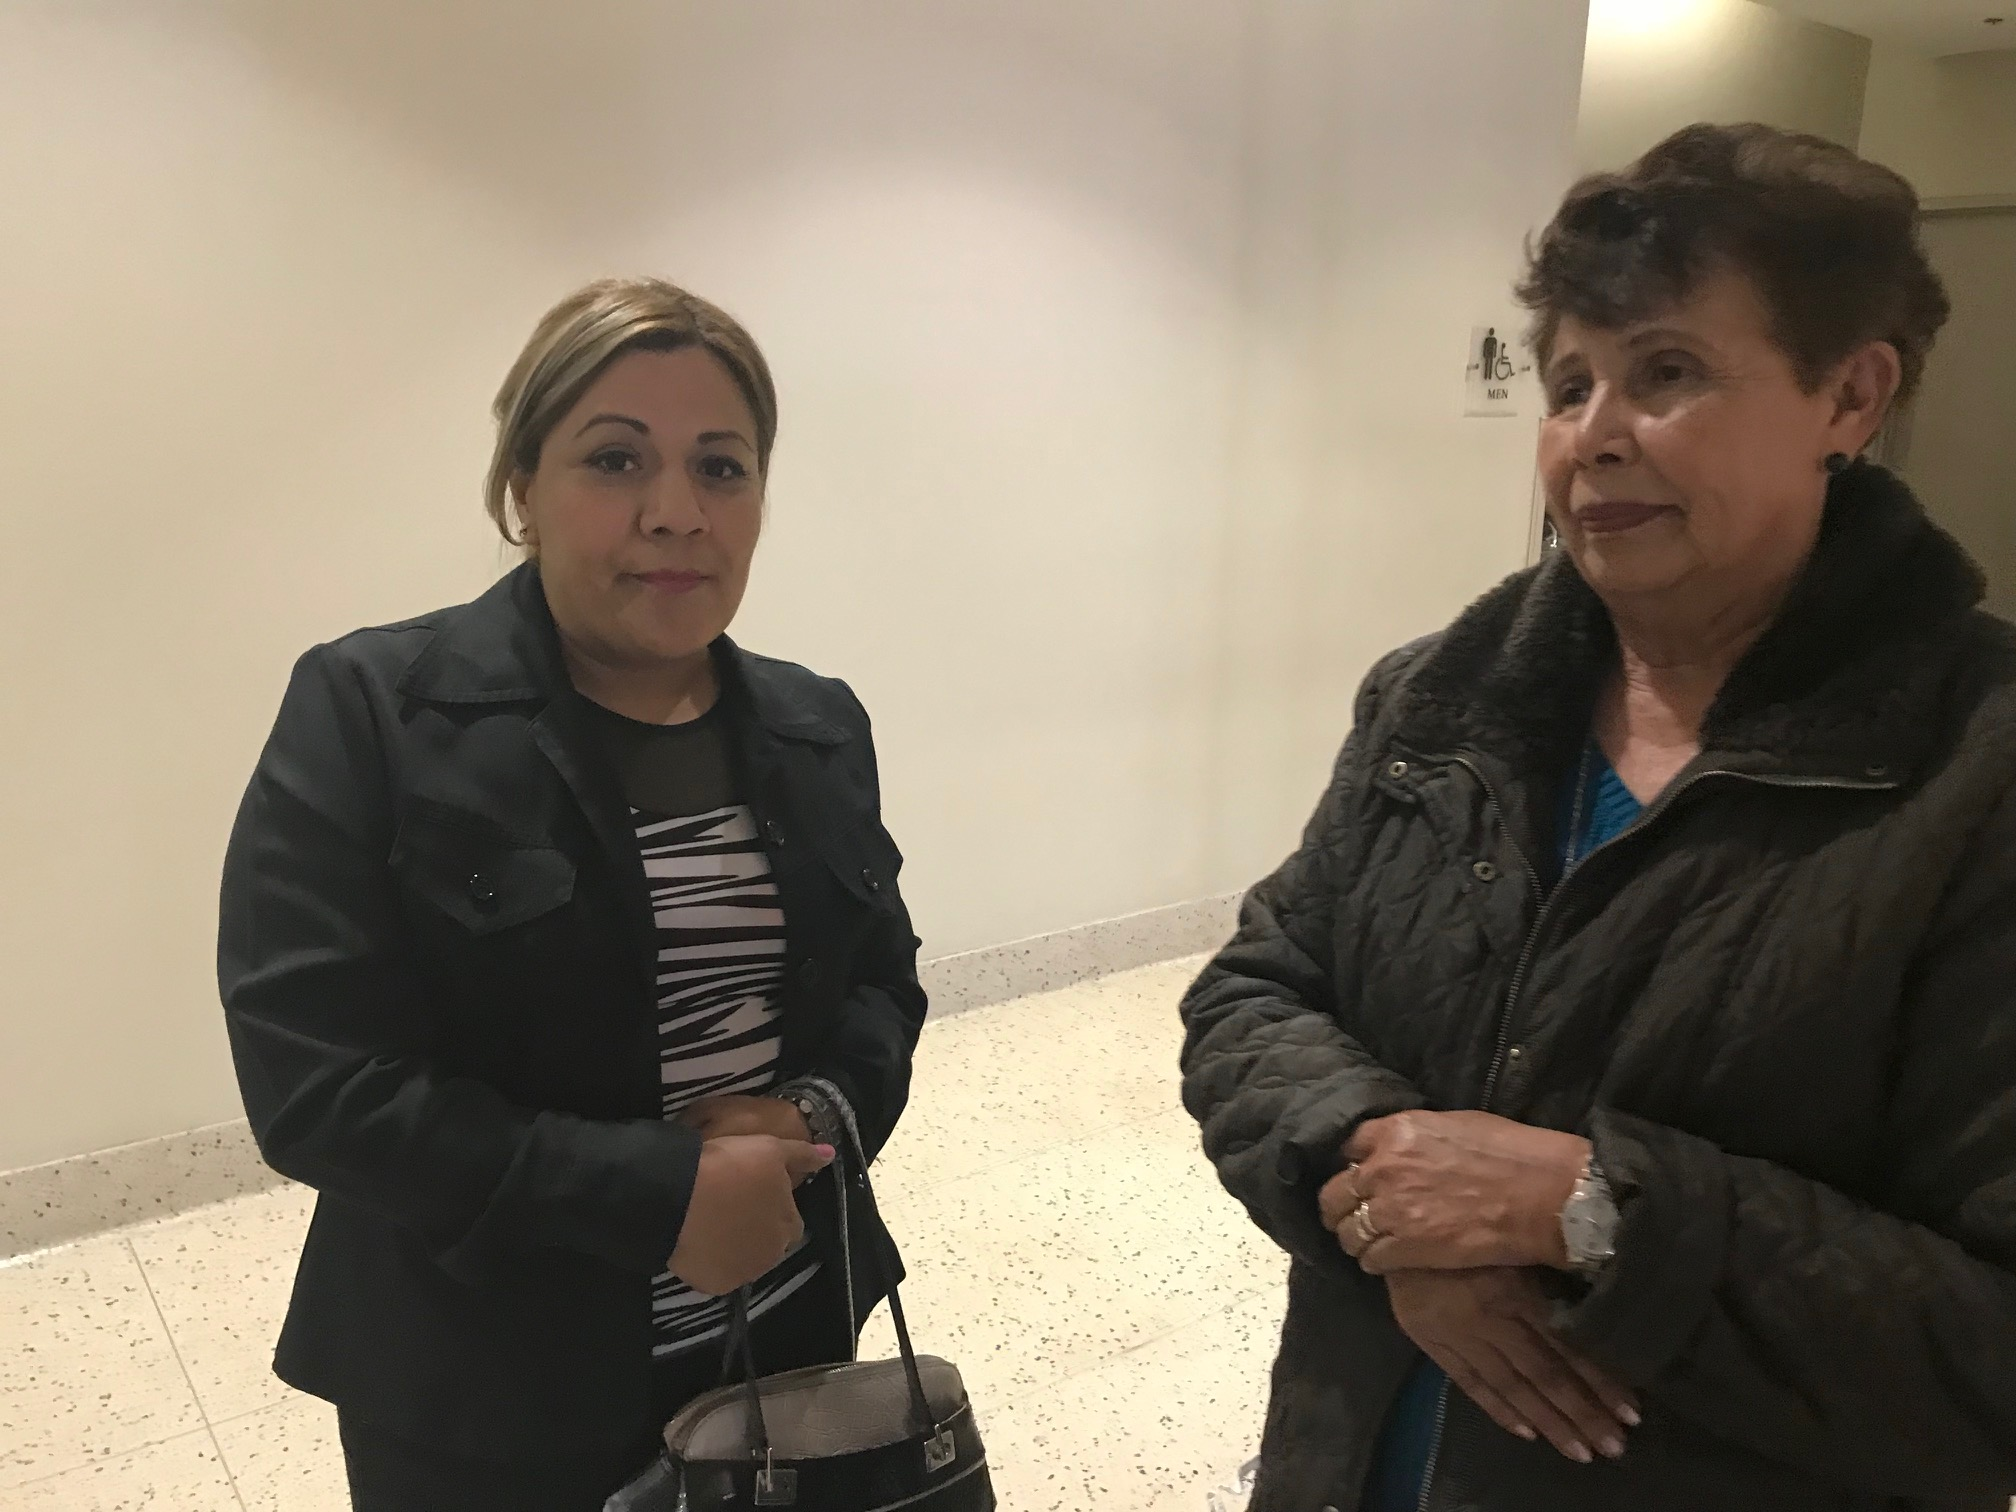 Family members Araceli Rodriquez and Taide Elena wait to enter the courtroom where a U.S. Border Patrol agent is on trial for the death of 16-year-old Jose Antonio Elena Rodriguez.